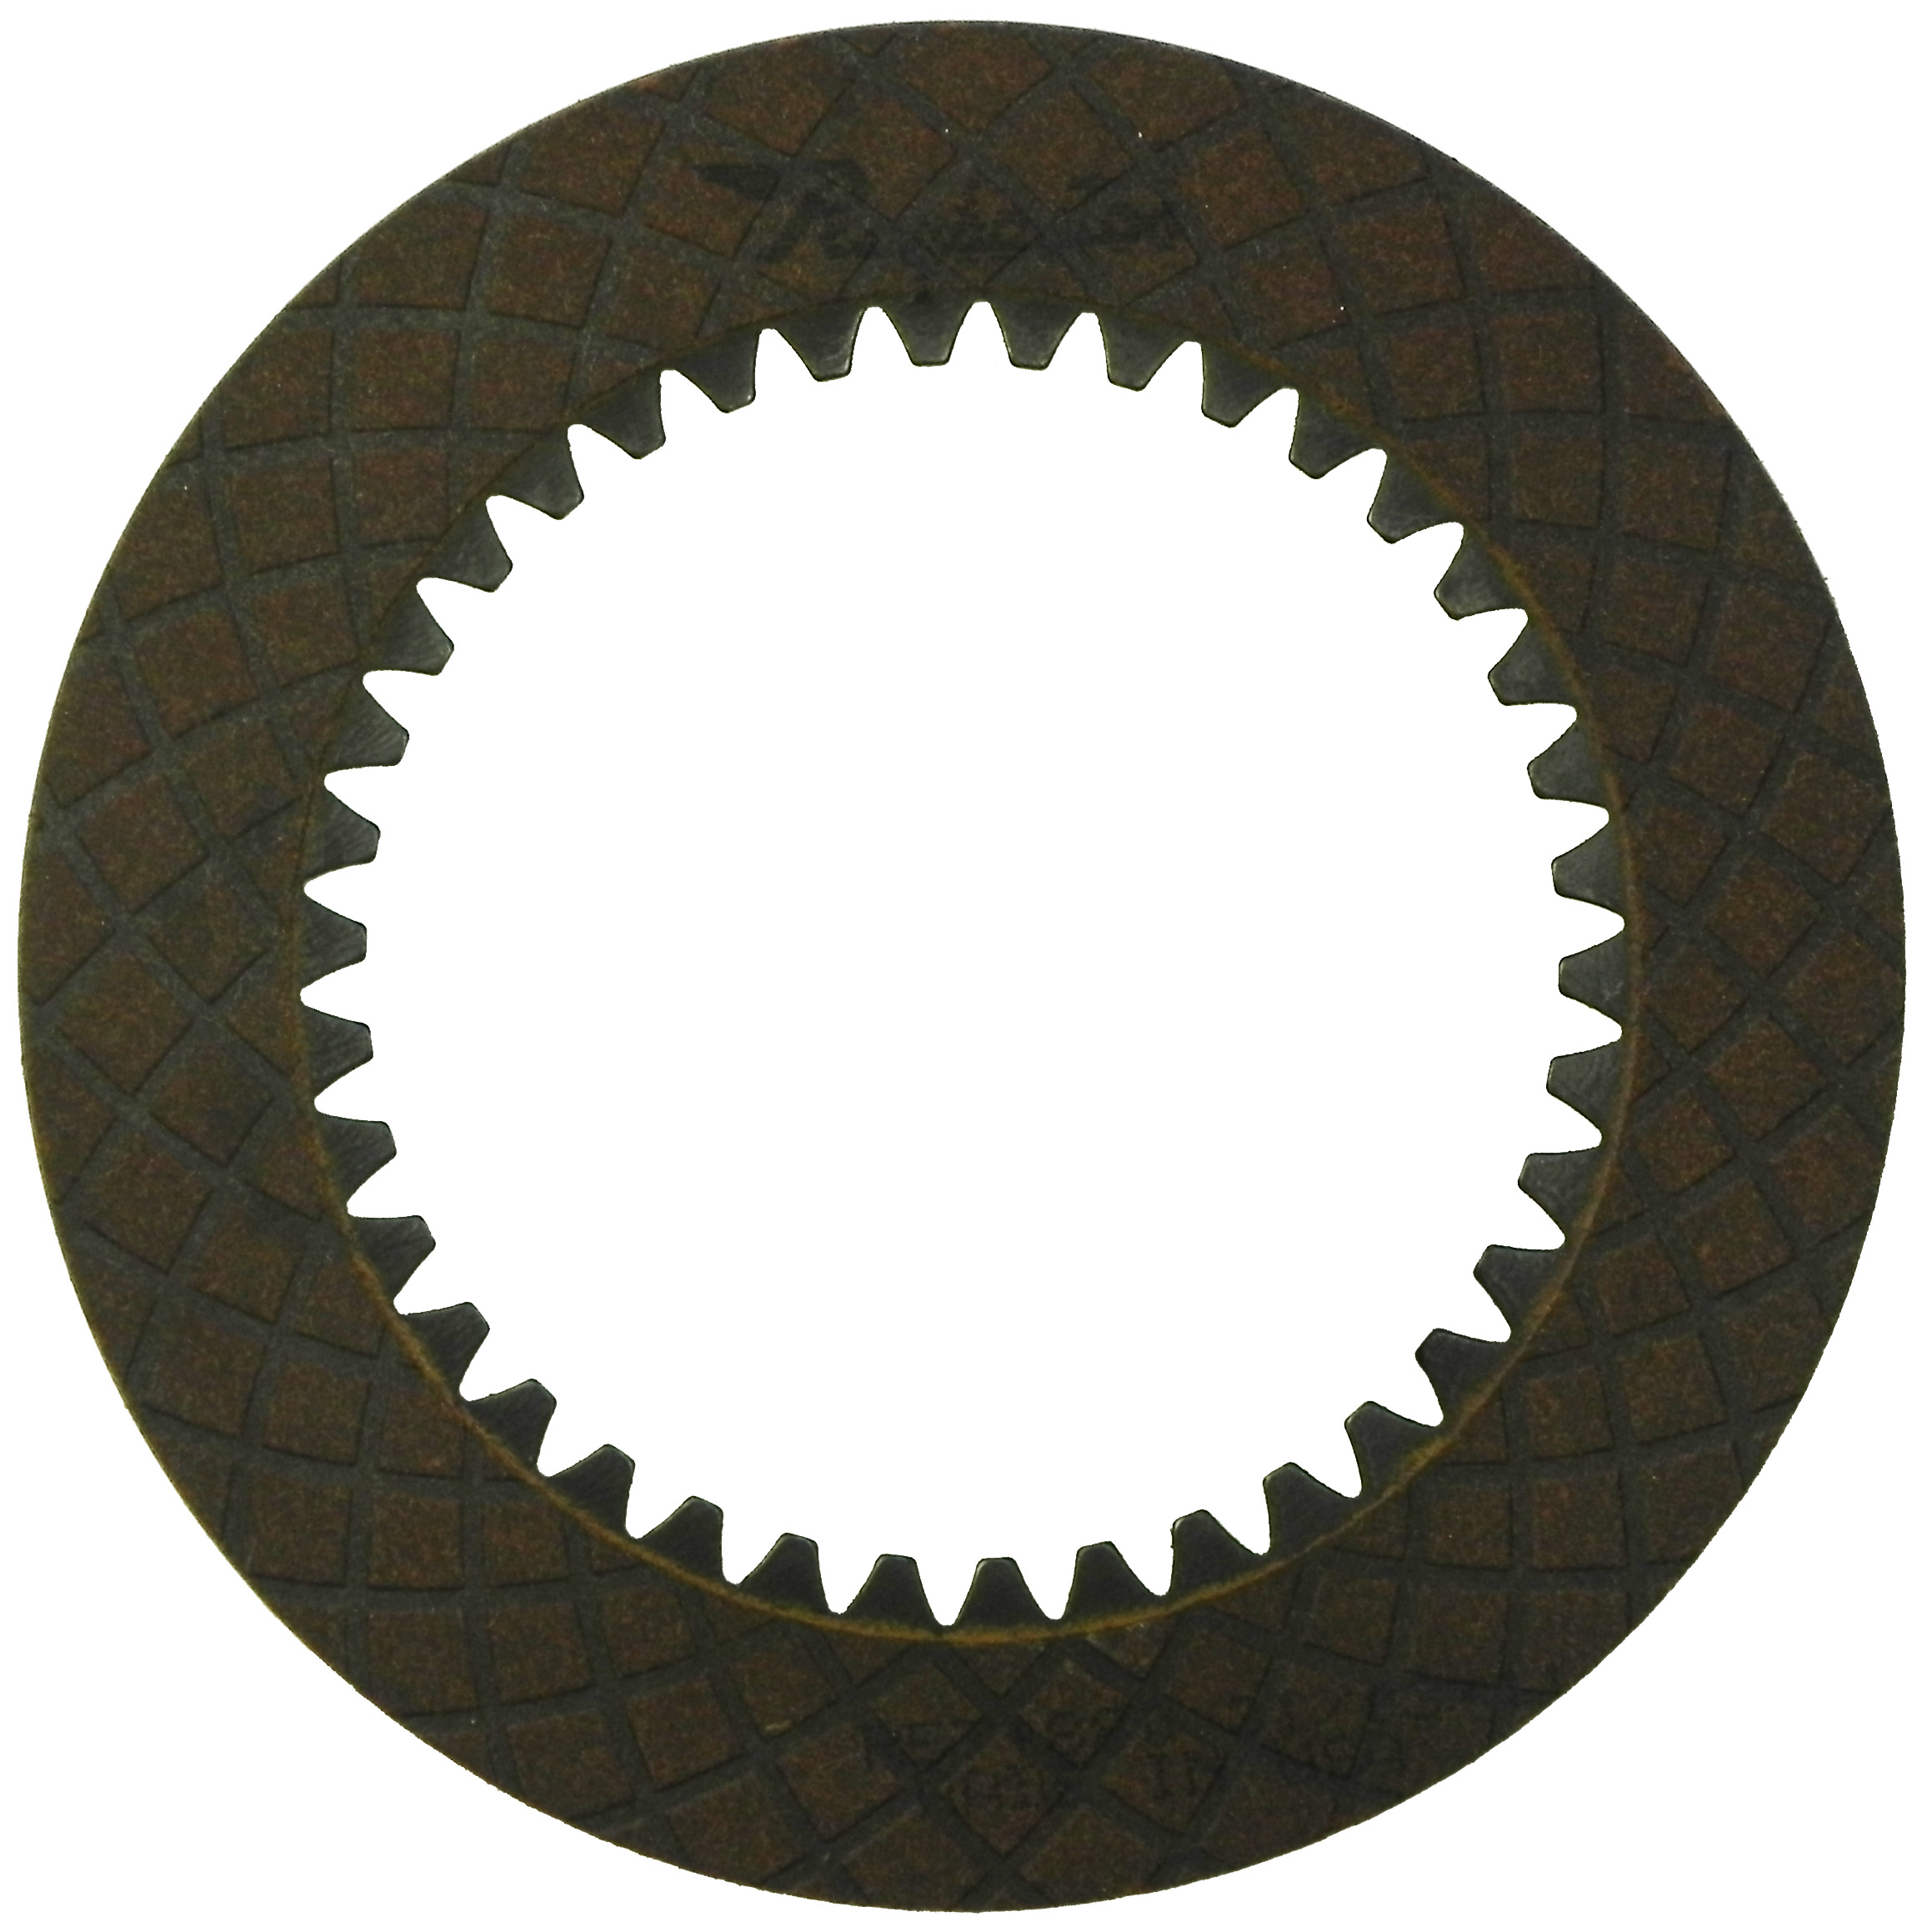 R571880 | 1994-2001 Friction Clutch Plate GPX 2nd, 3rd, 4th GPX